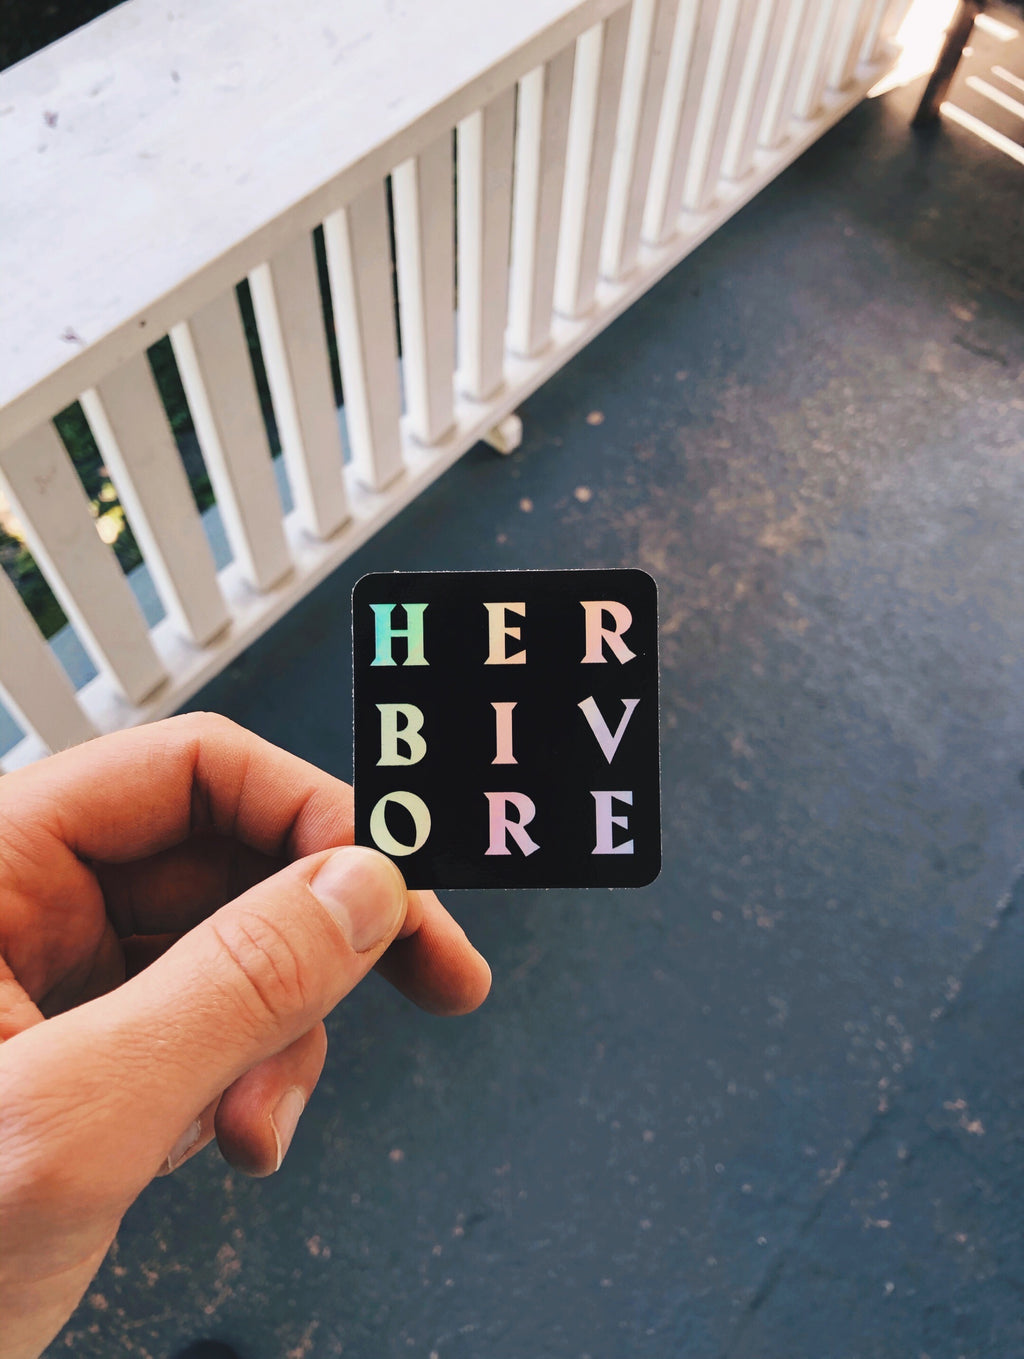 HER BIV ORE - HOLOGRAPHIC STICKER